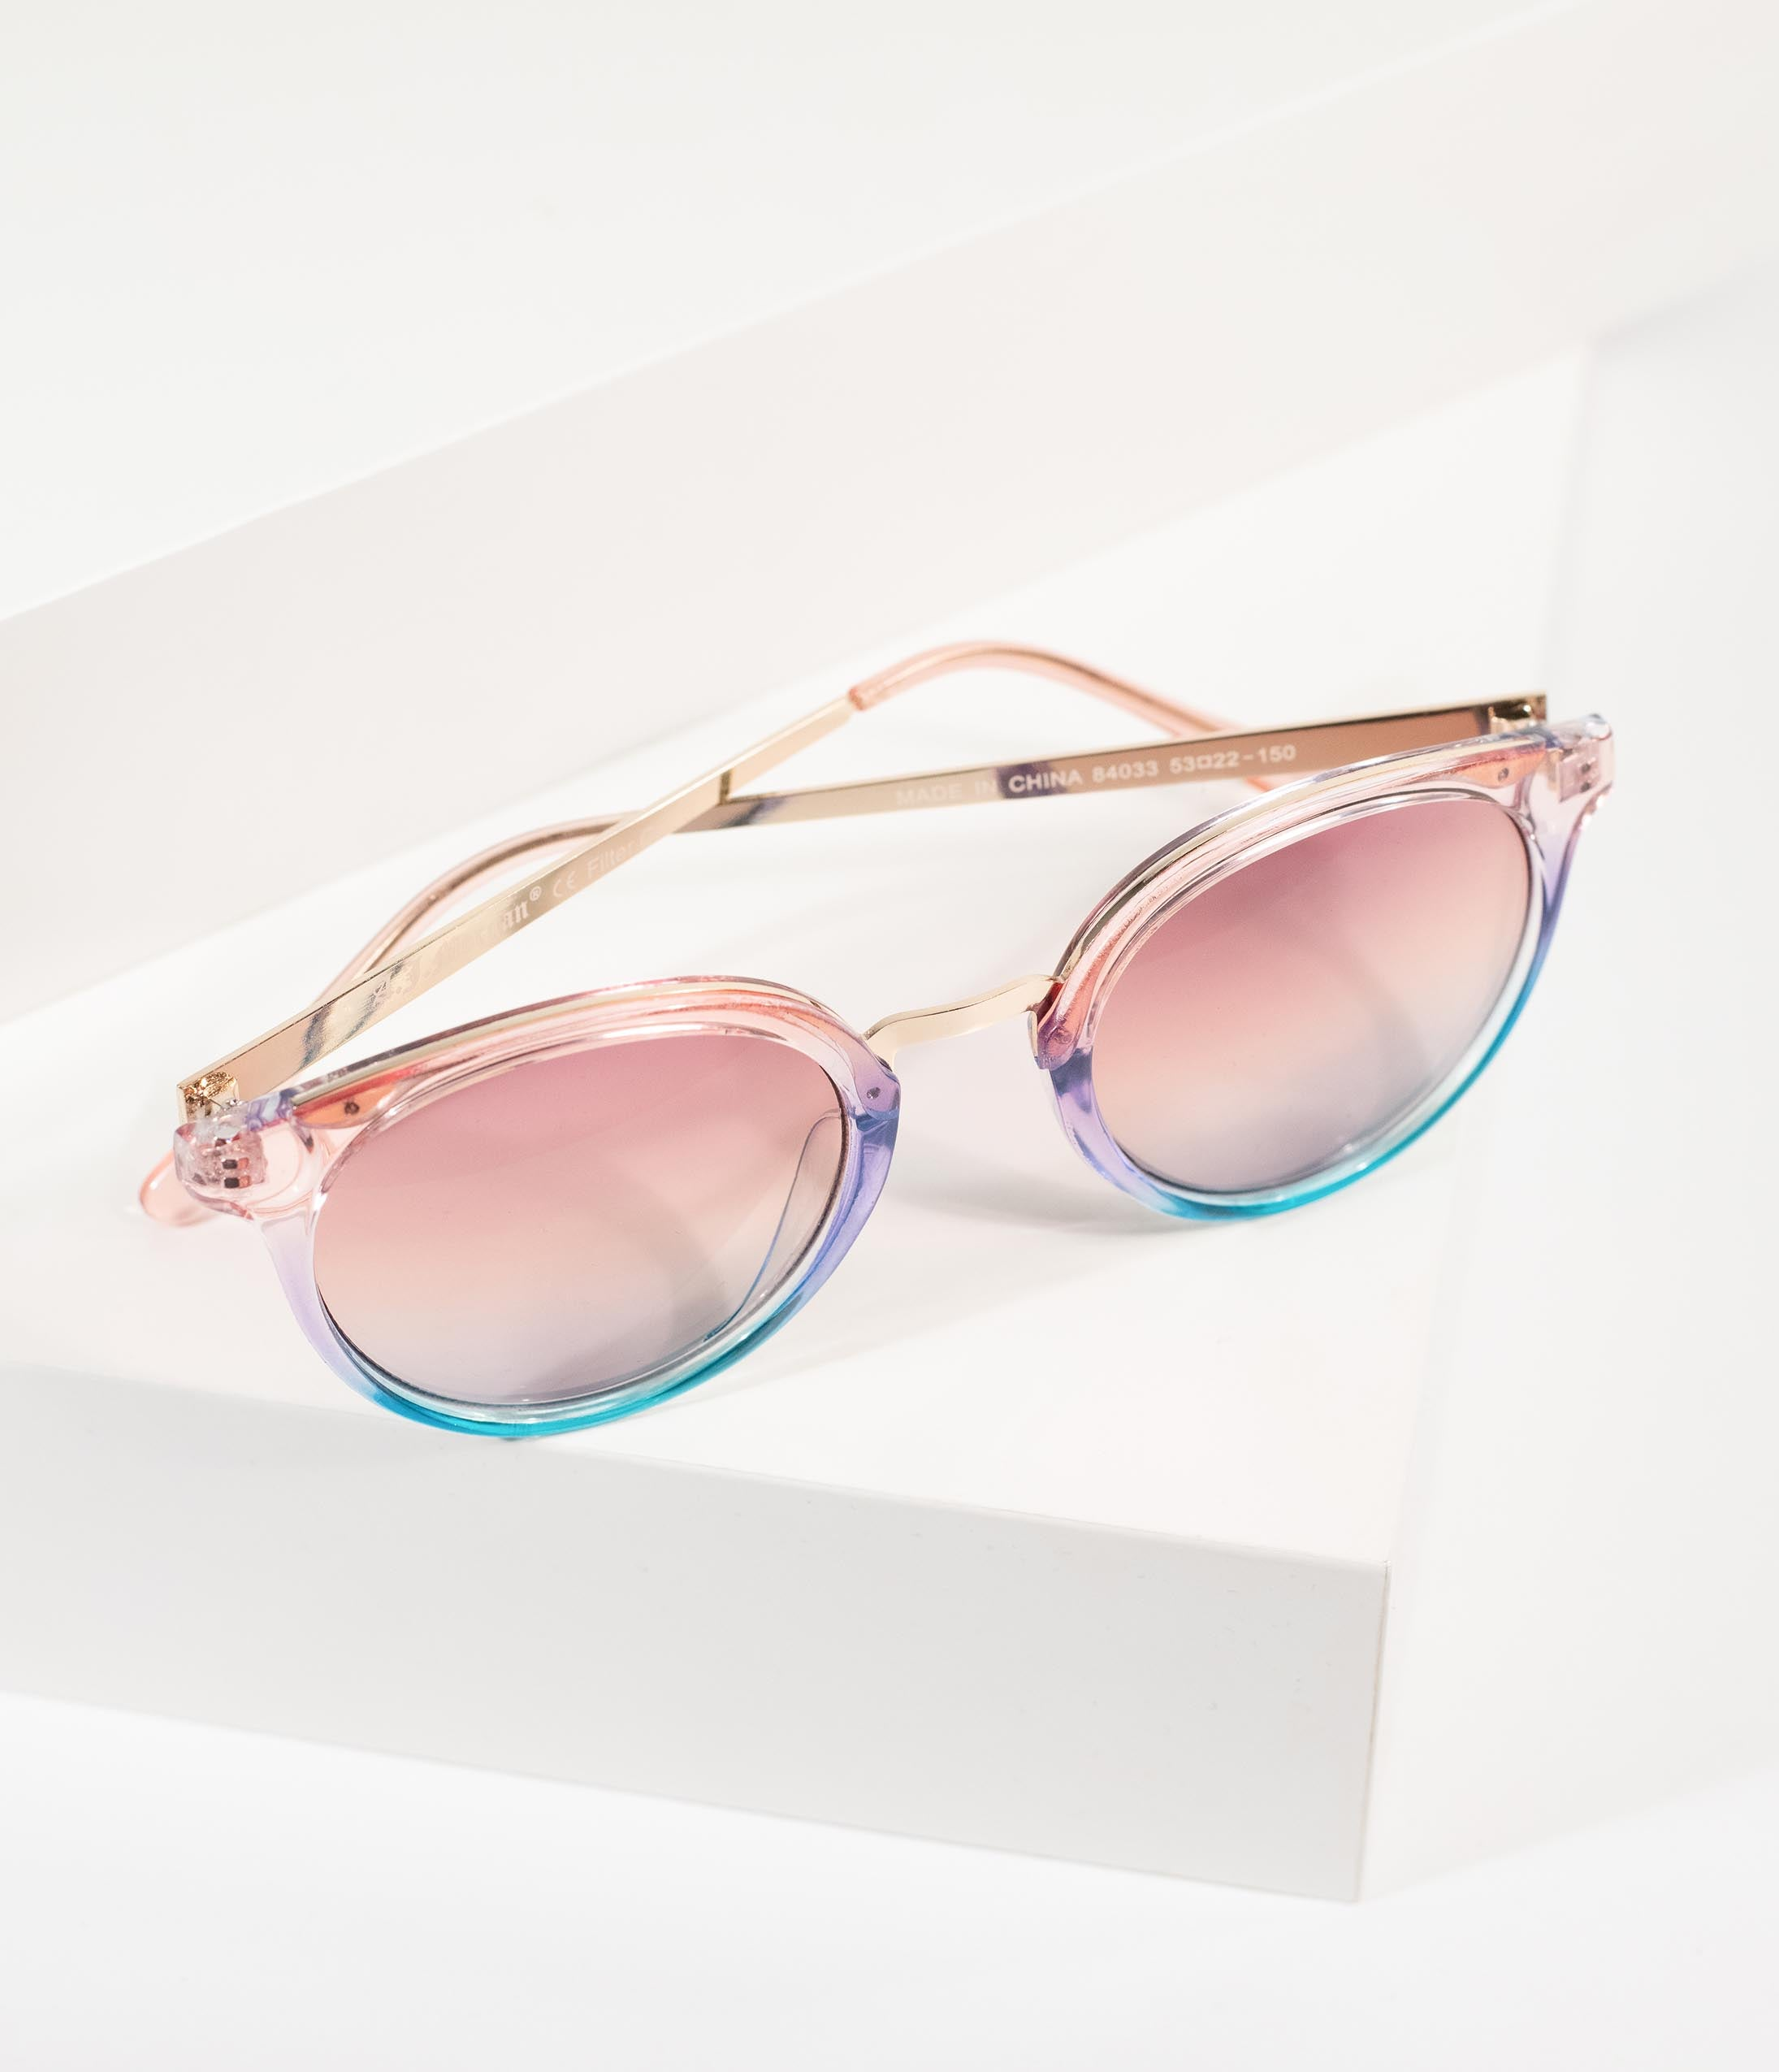 f81a580b41437 1970s Style Pink   Blue Rounded Crystal Metal Sunglasses